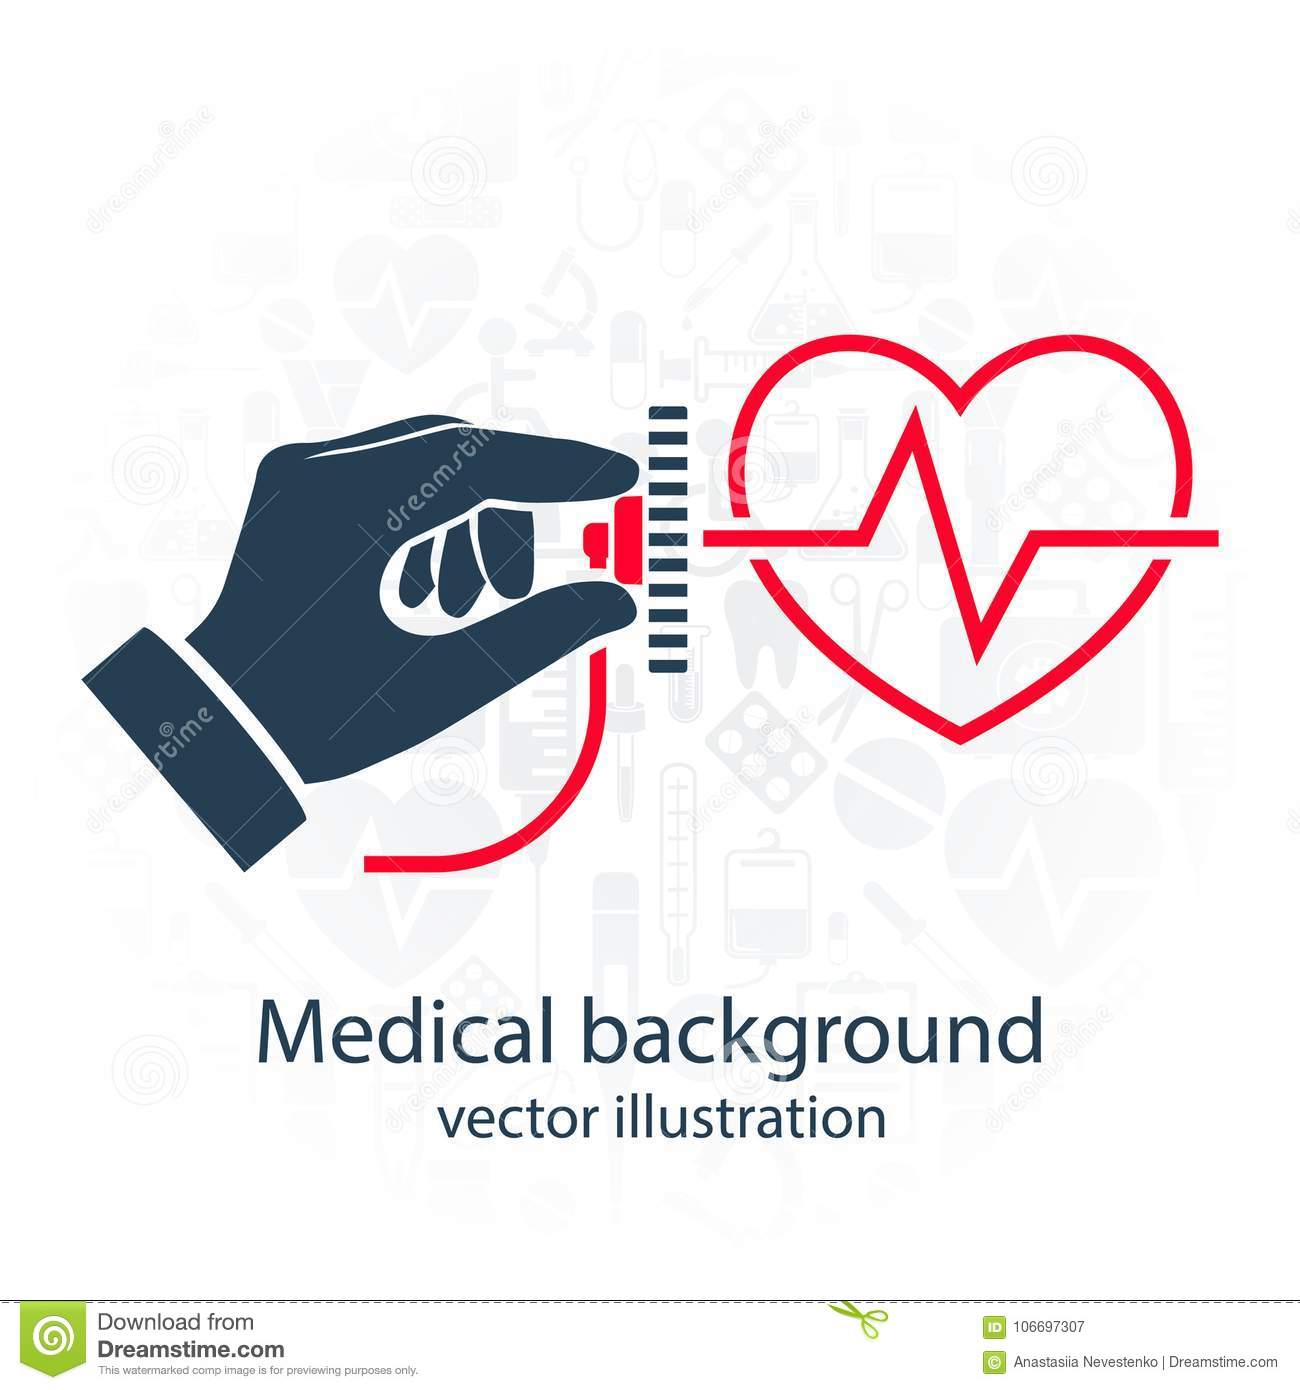 Cardiology Concept Vector Stock Vector Illustration Of Icon 106697307